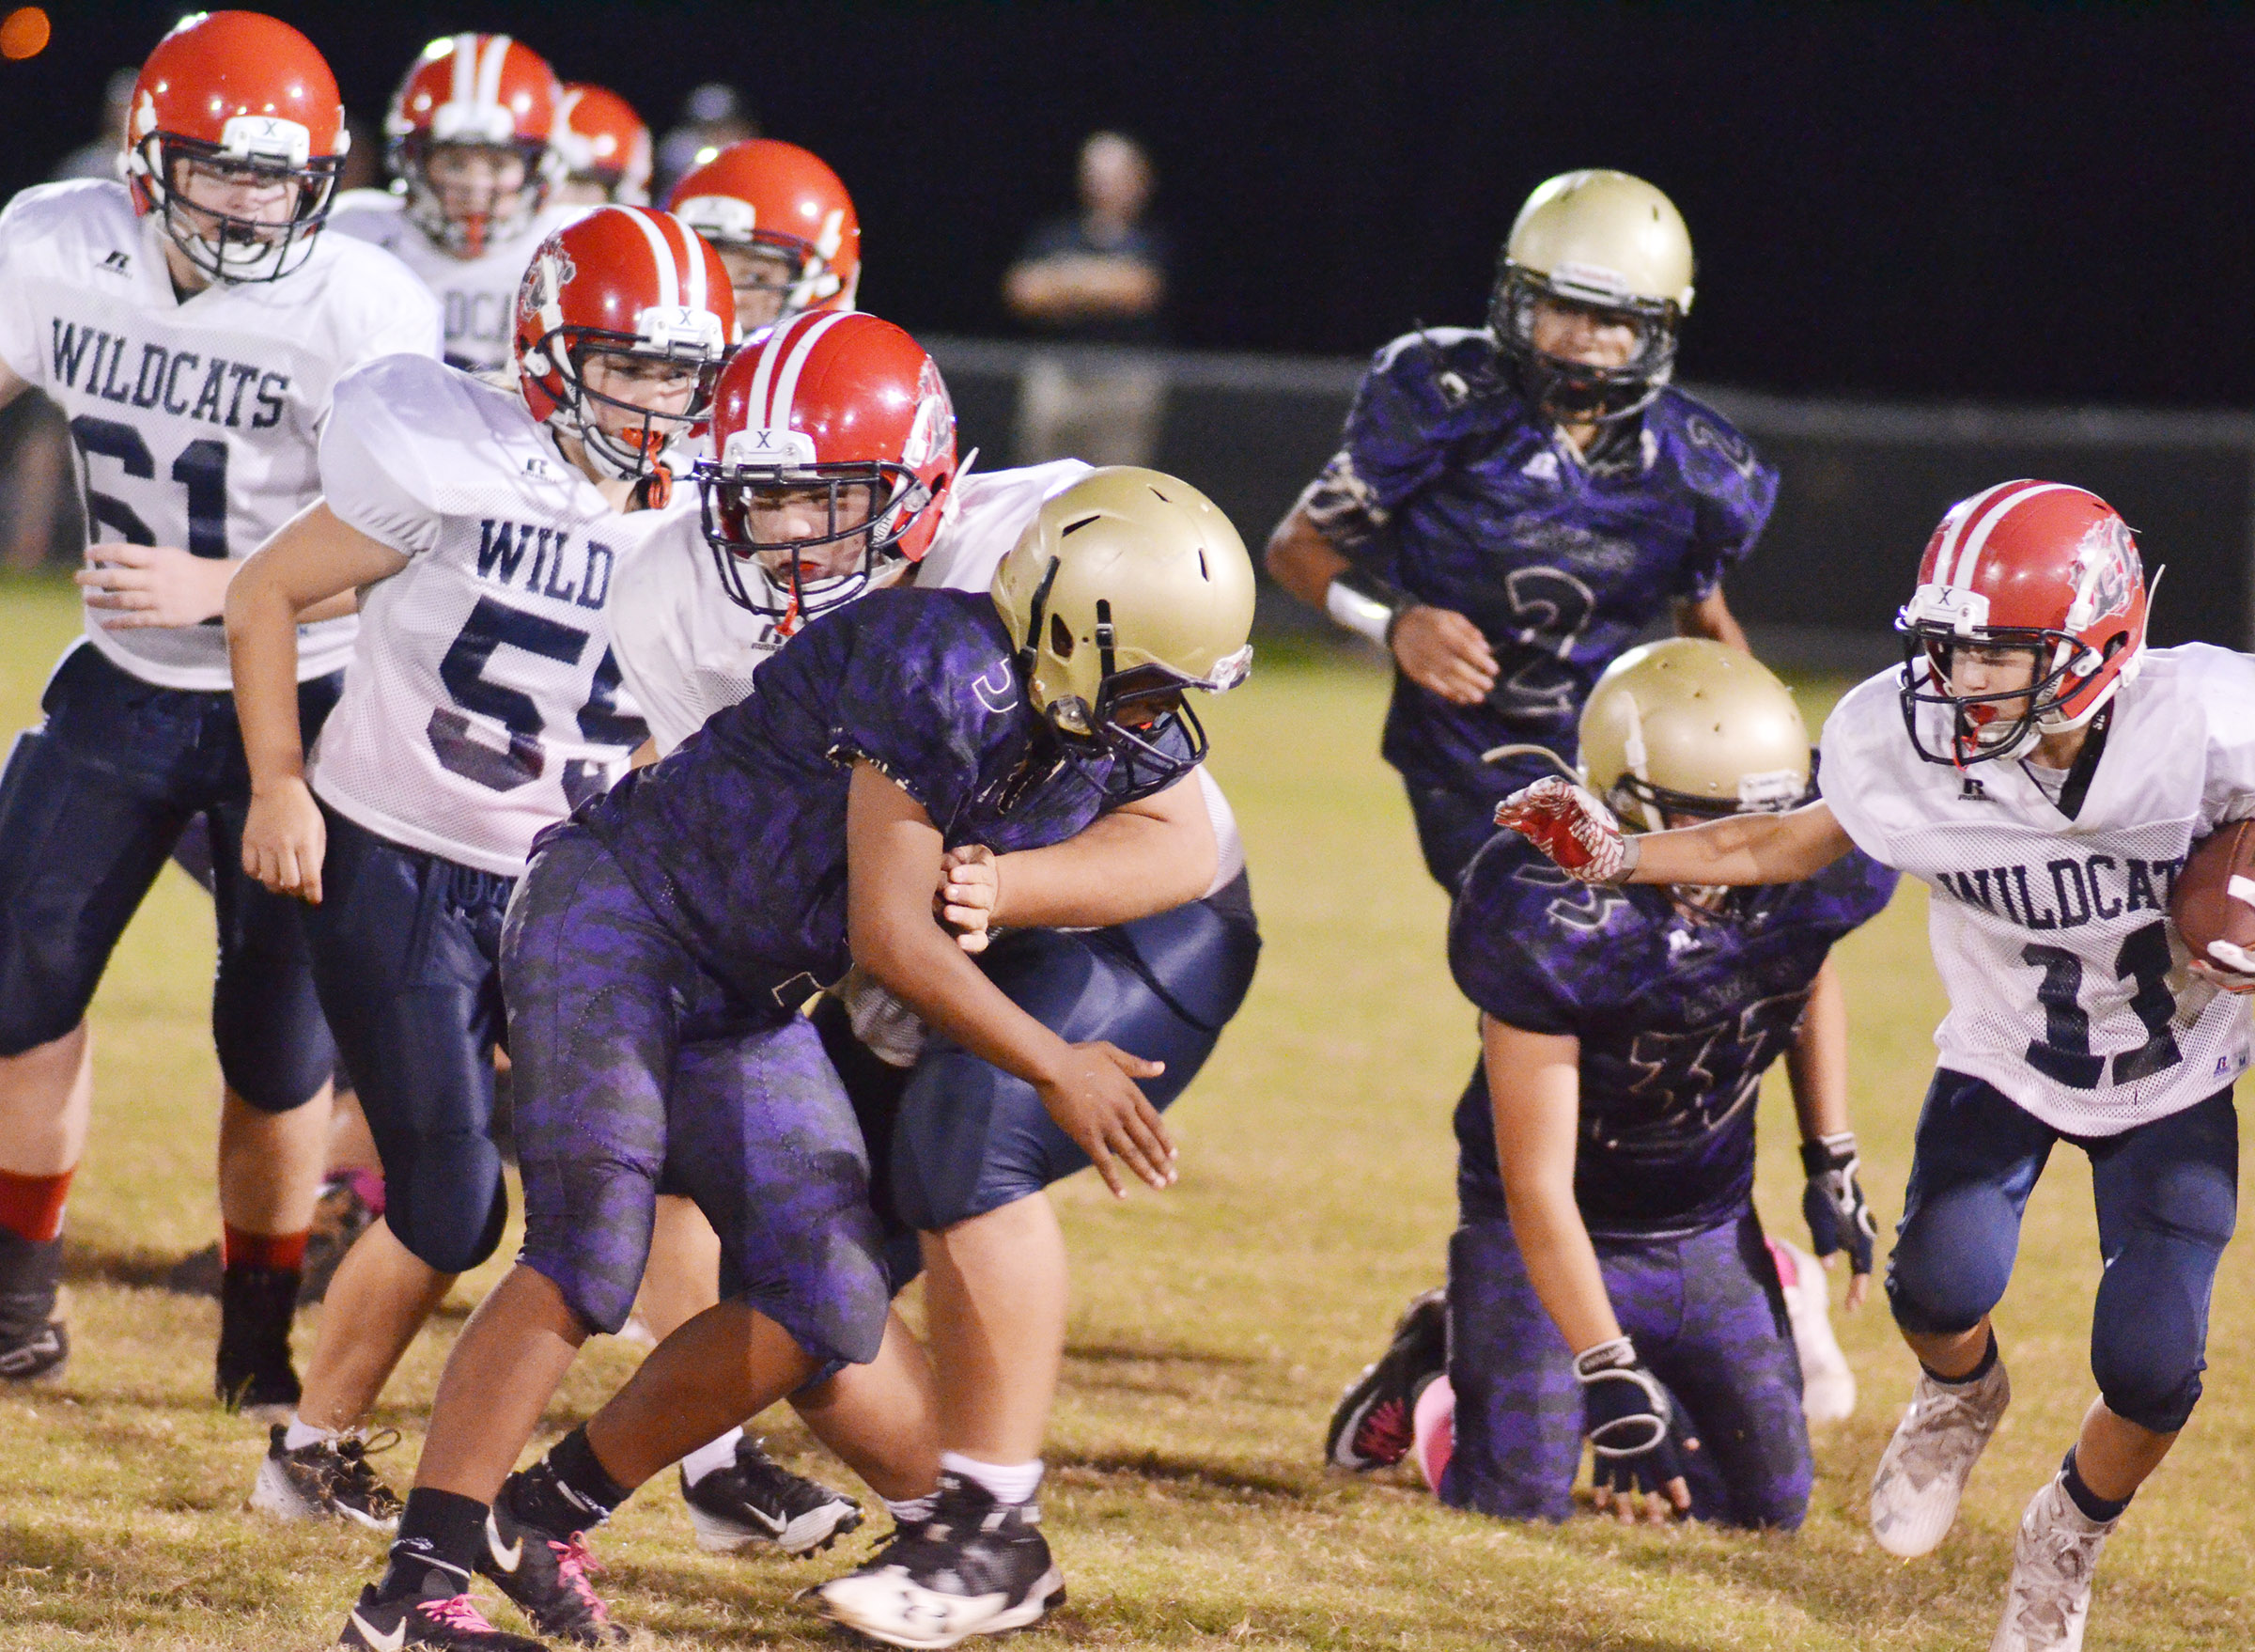 CMS players tackle.